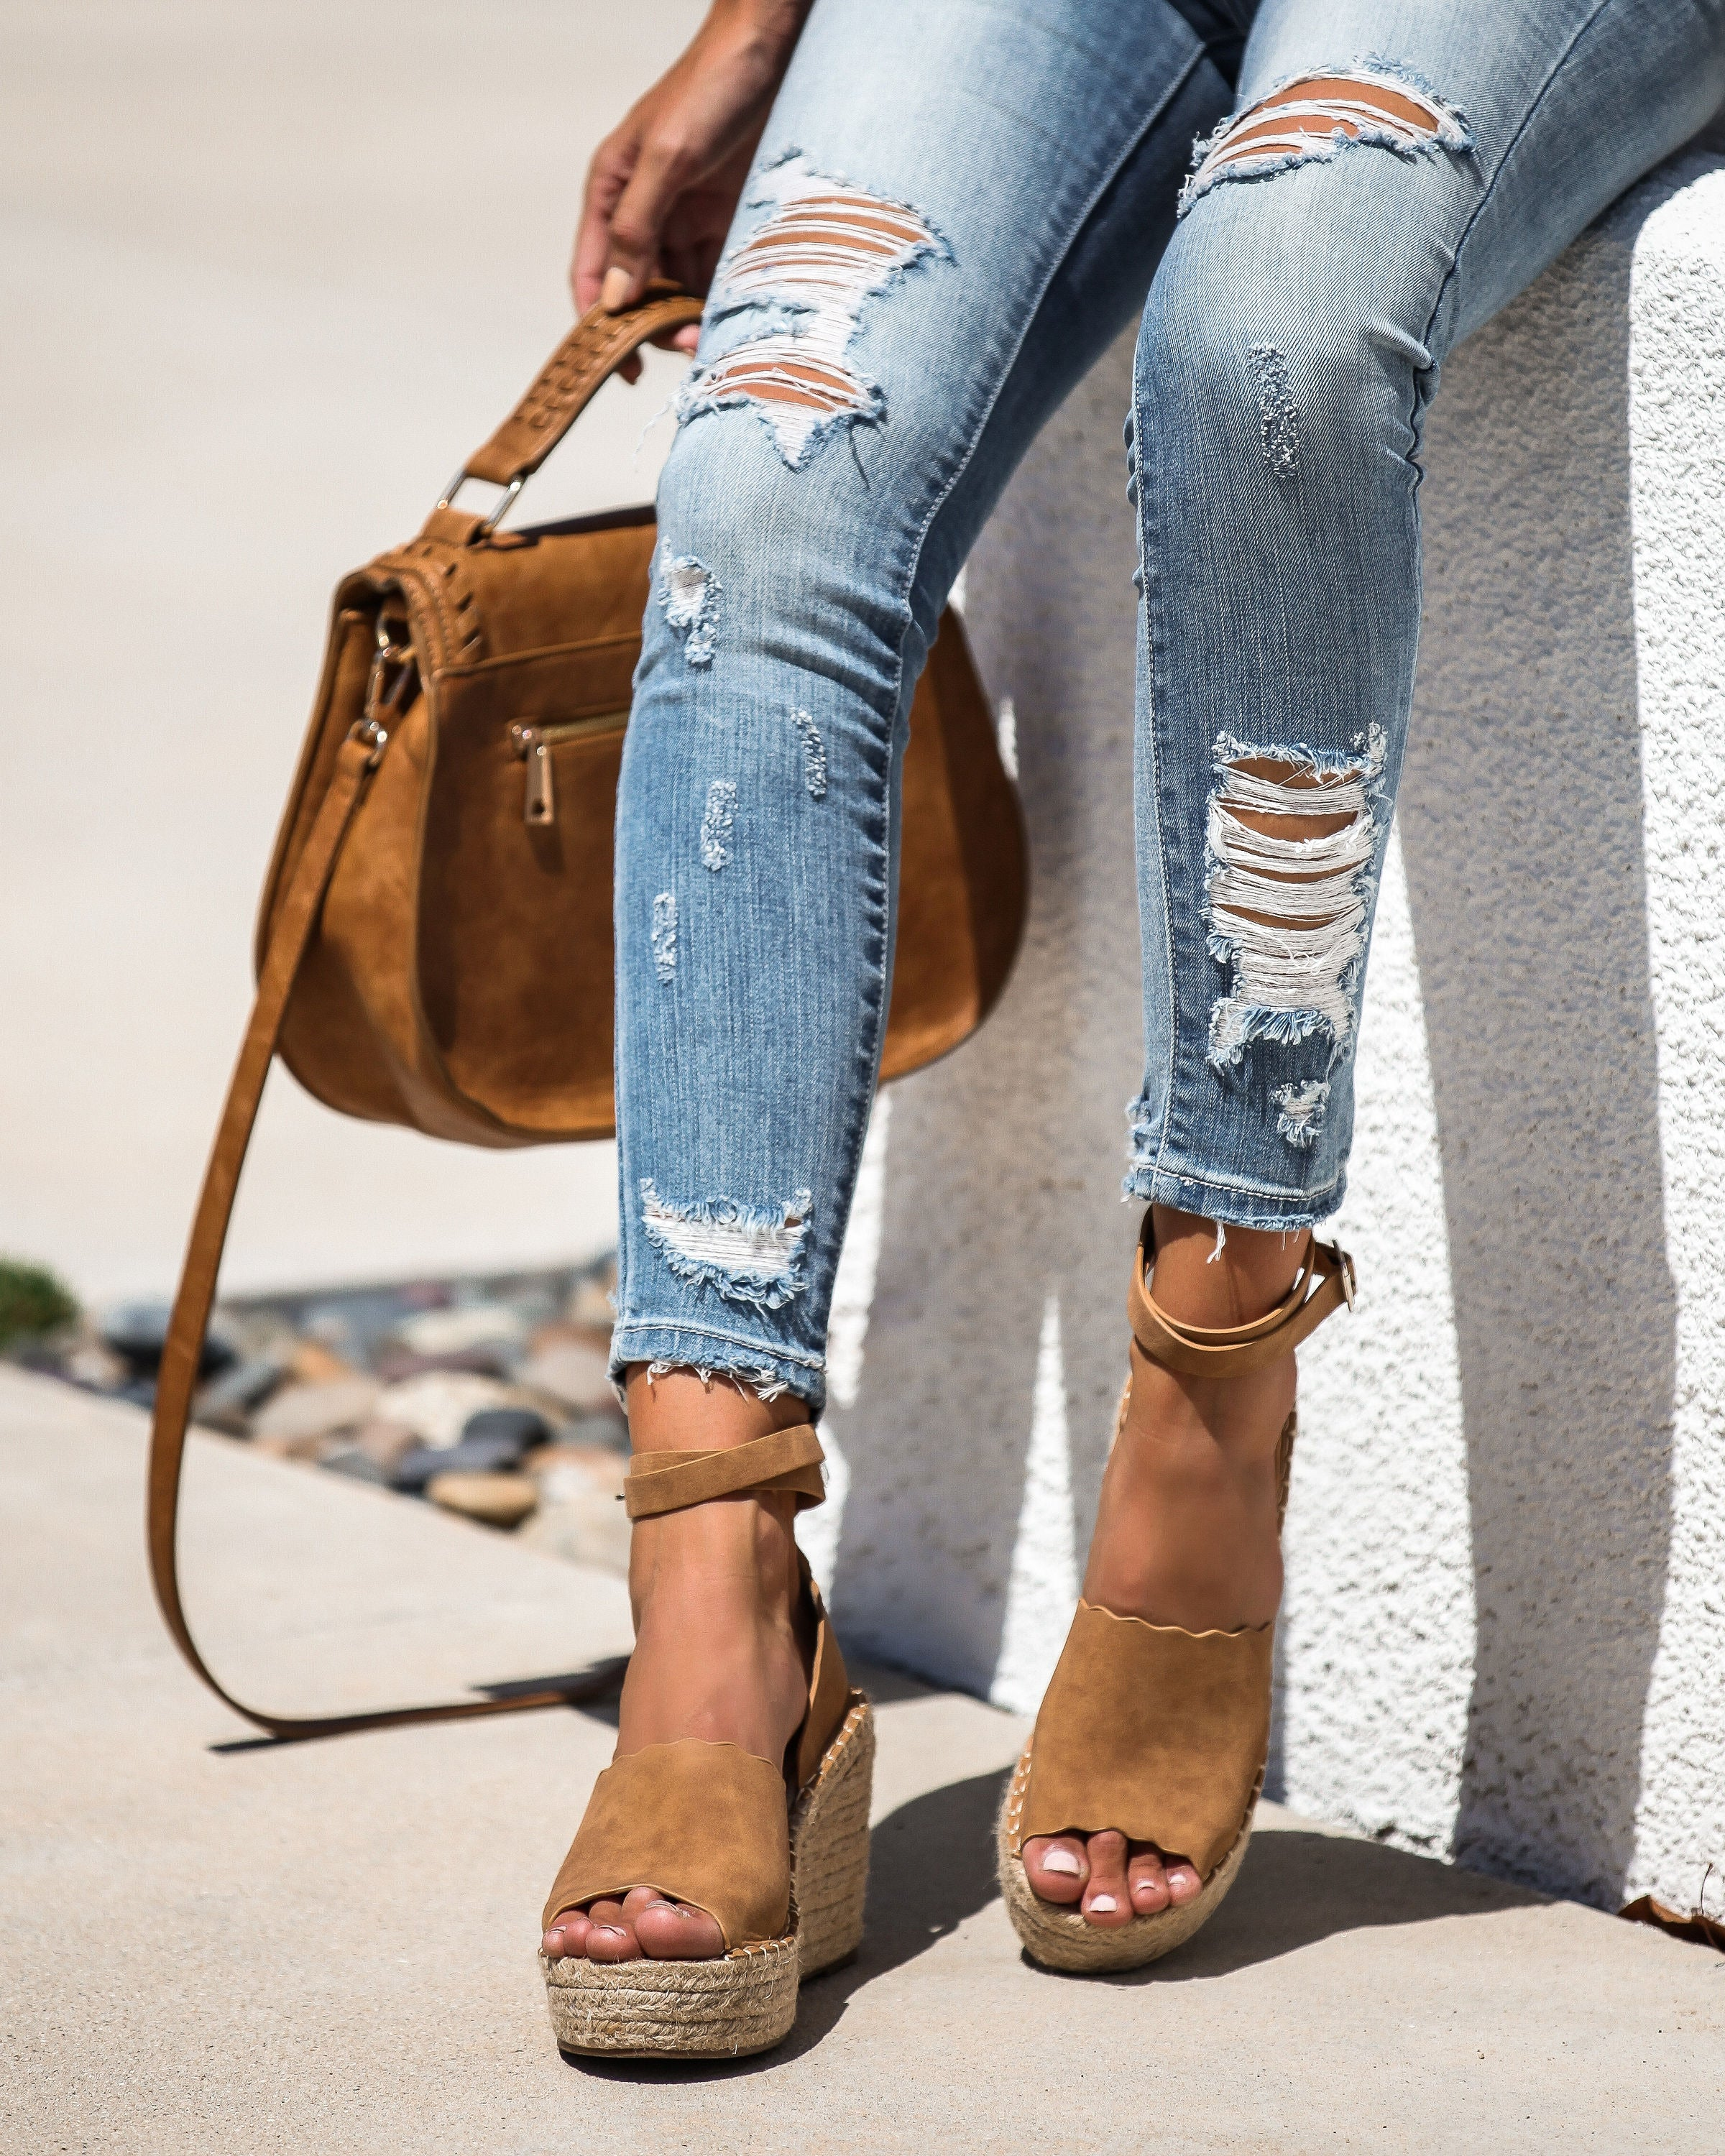 c05a1c7b615 Naomi Ankle Wrap Scalloped Espadrille Wedge - FINAL SALE